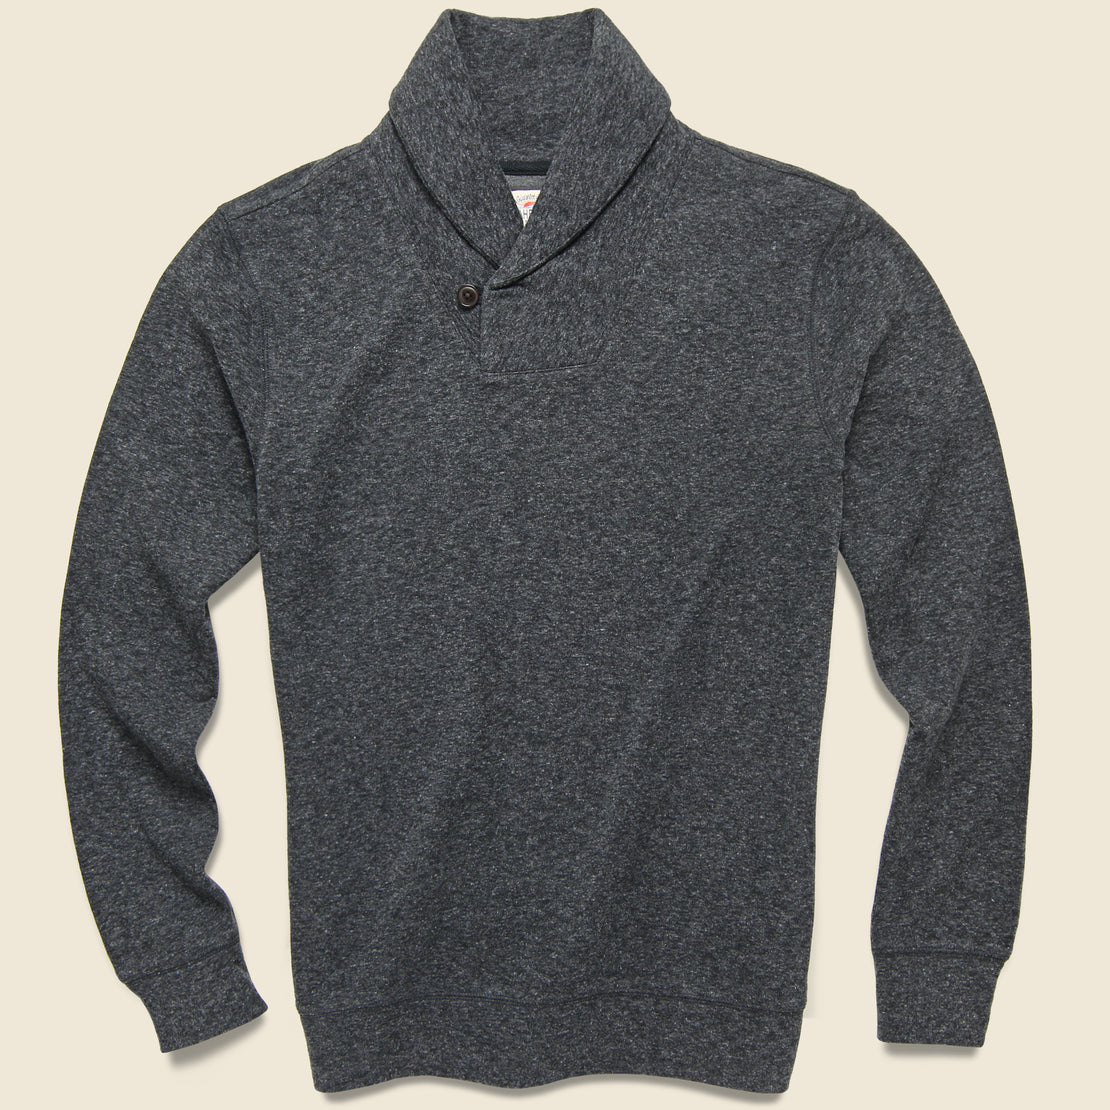 Faherty Dual Knit Shawl Collar Pullover - Washed Black